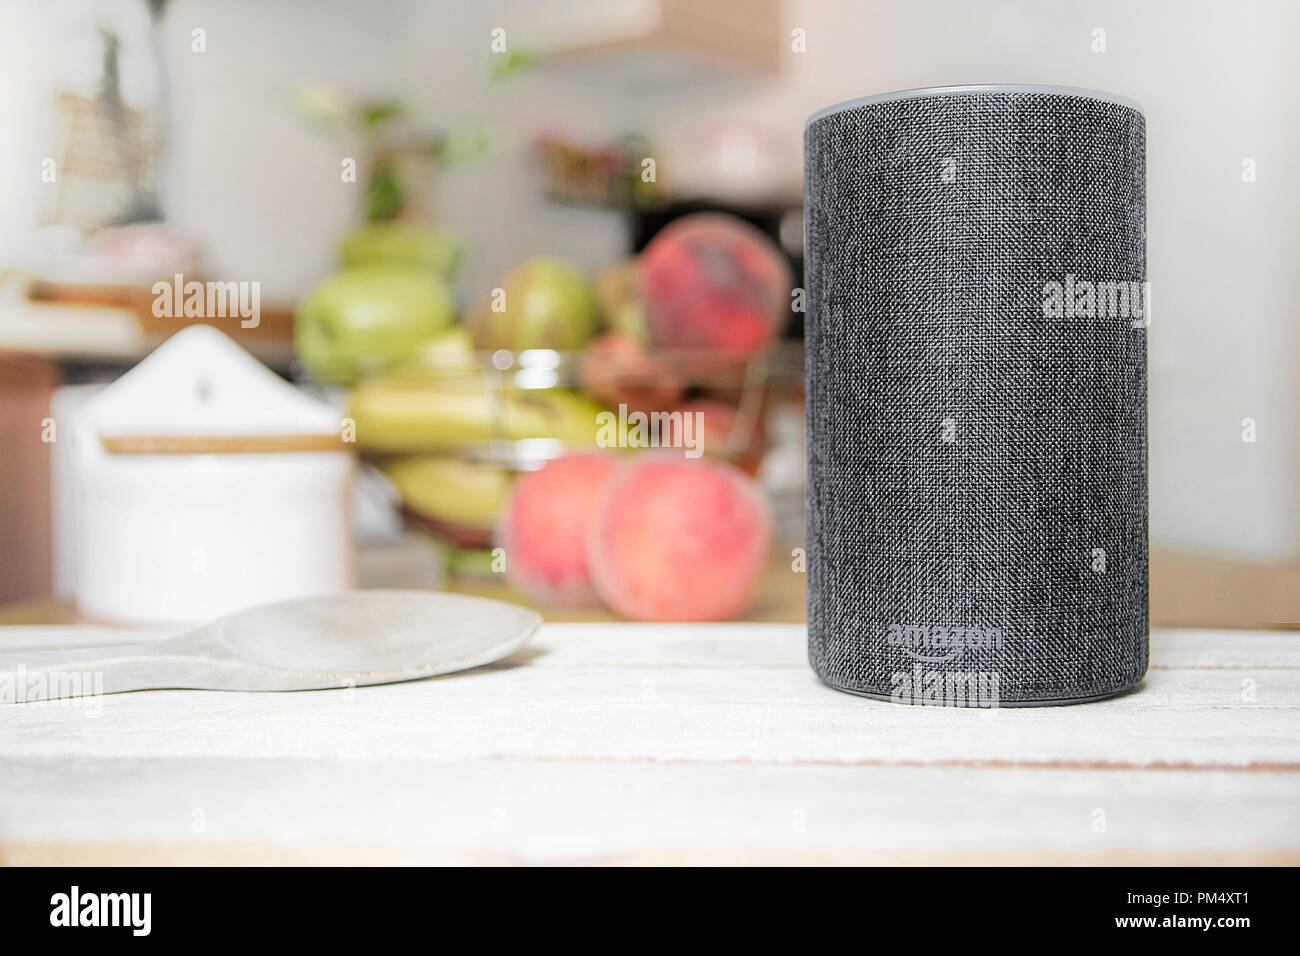 Bilder Für Küche Amazon Barcelona September 2018 Amazon Echo Smart Home Alexa Voice